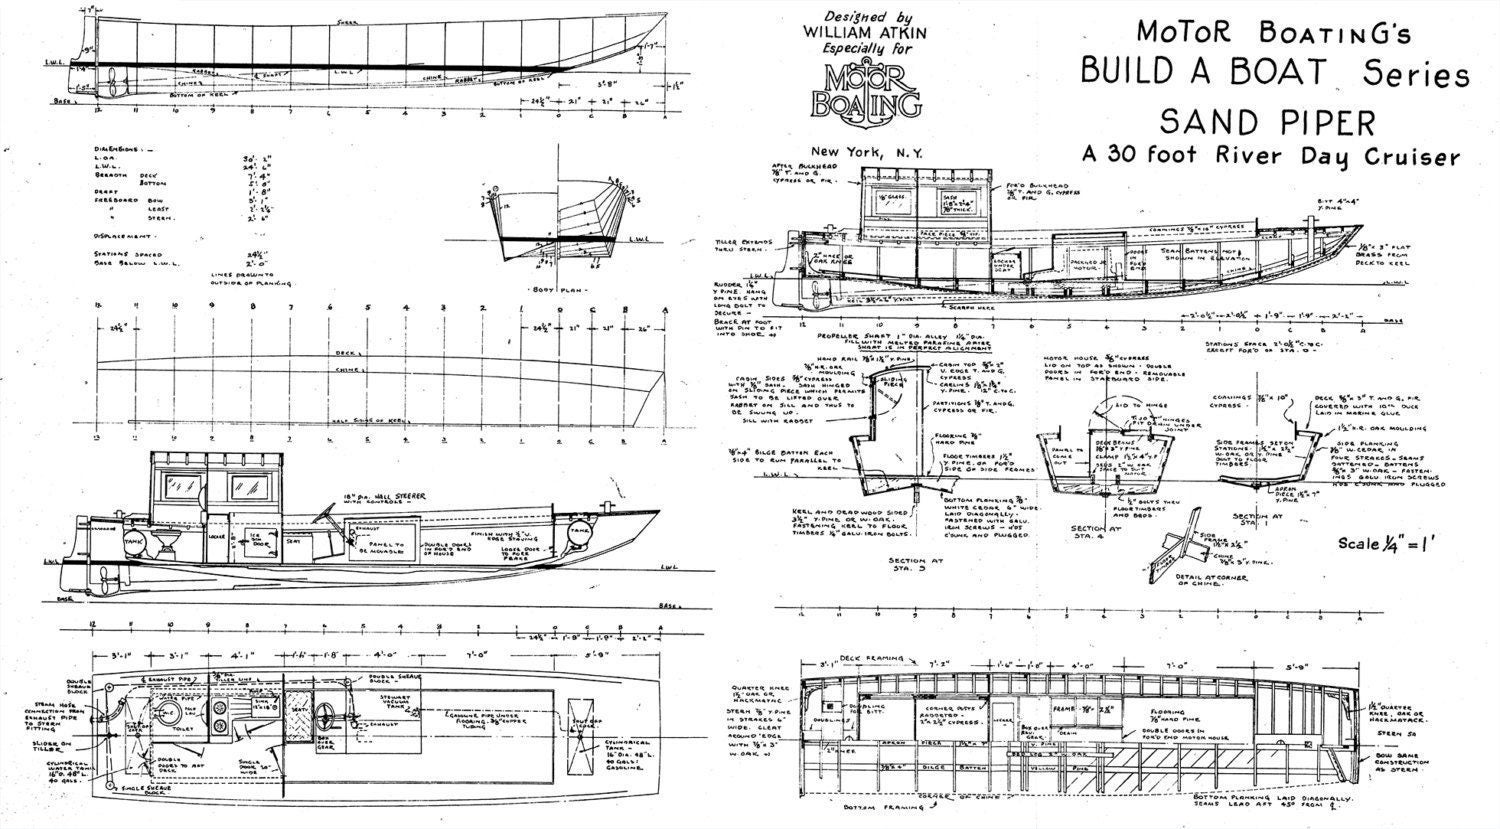 Print of vintage sand piper boat blueprint from motor boatings print of vintage sand piper boat blueprint from motor boatings build a boat series on your choice of matte paper photo paper or canvas malvernweather Images